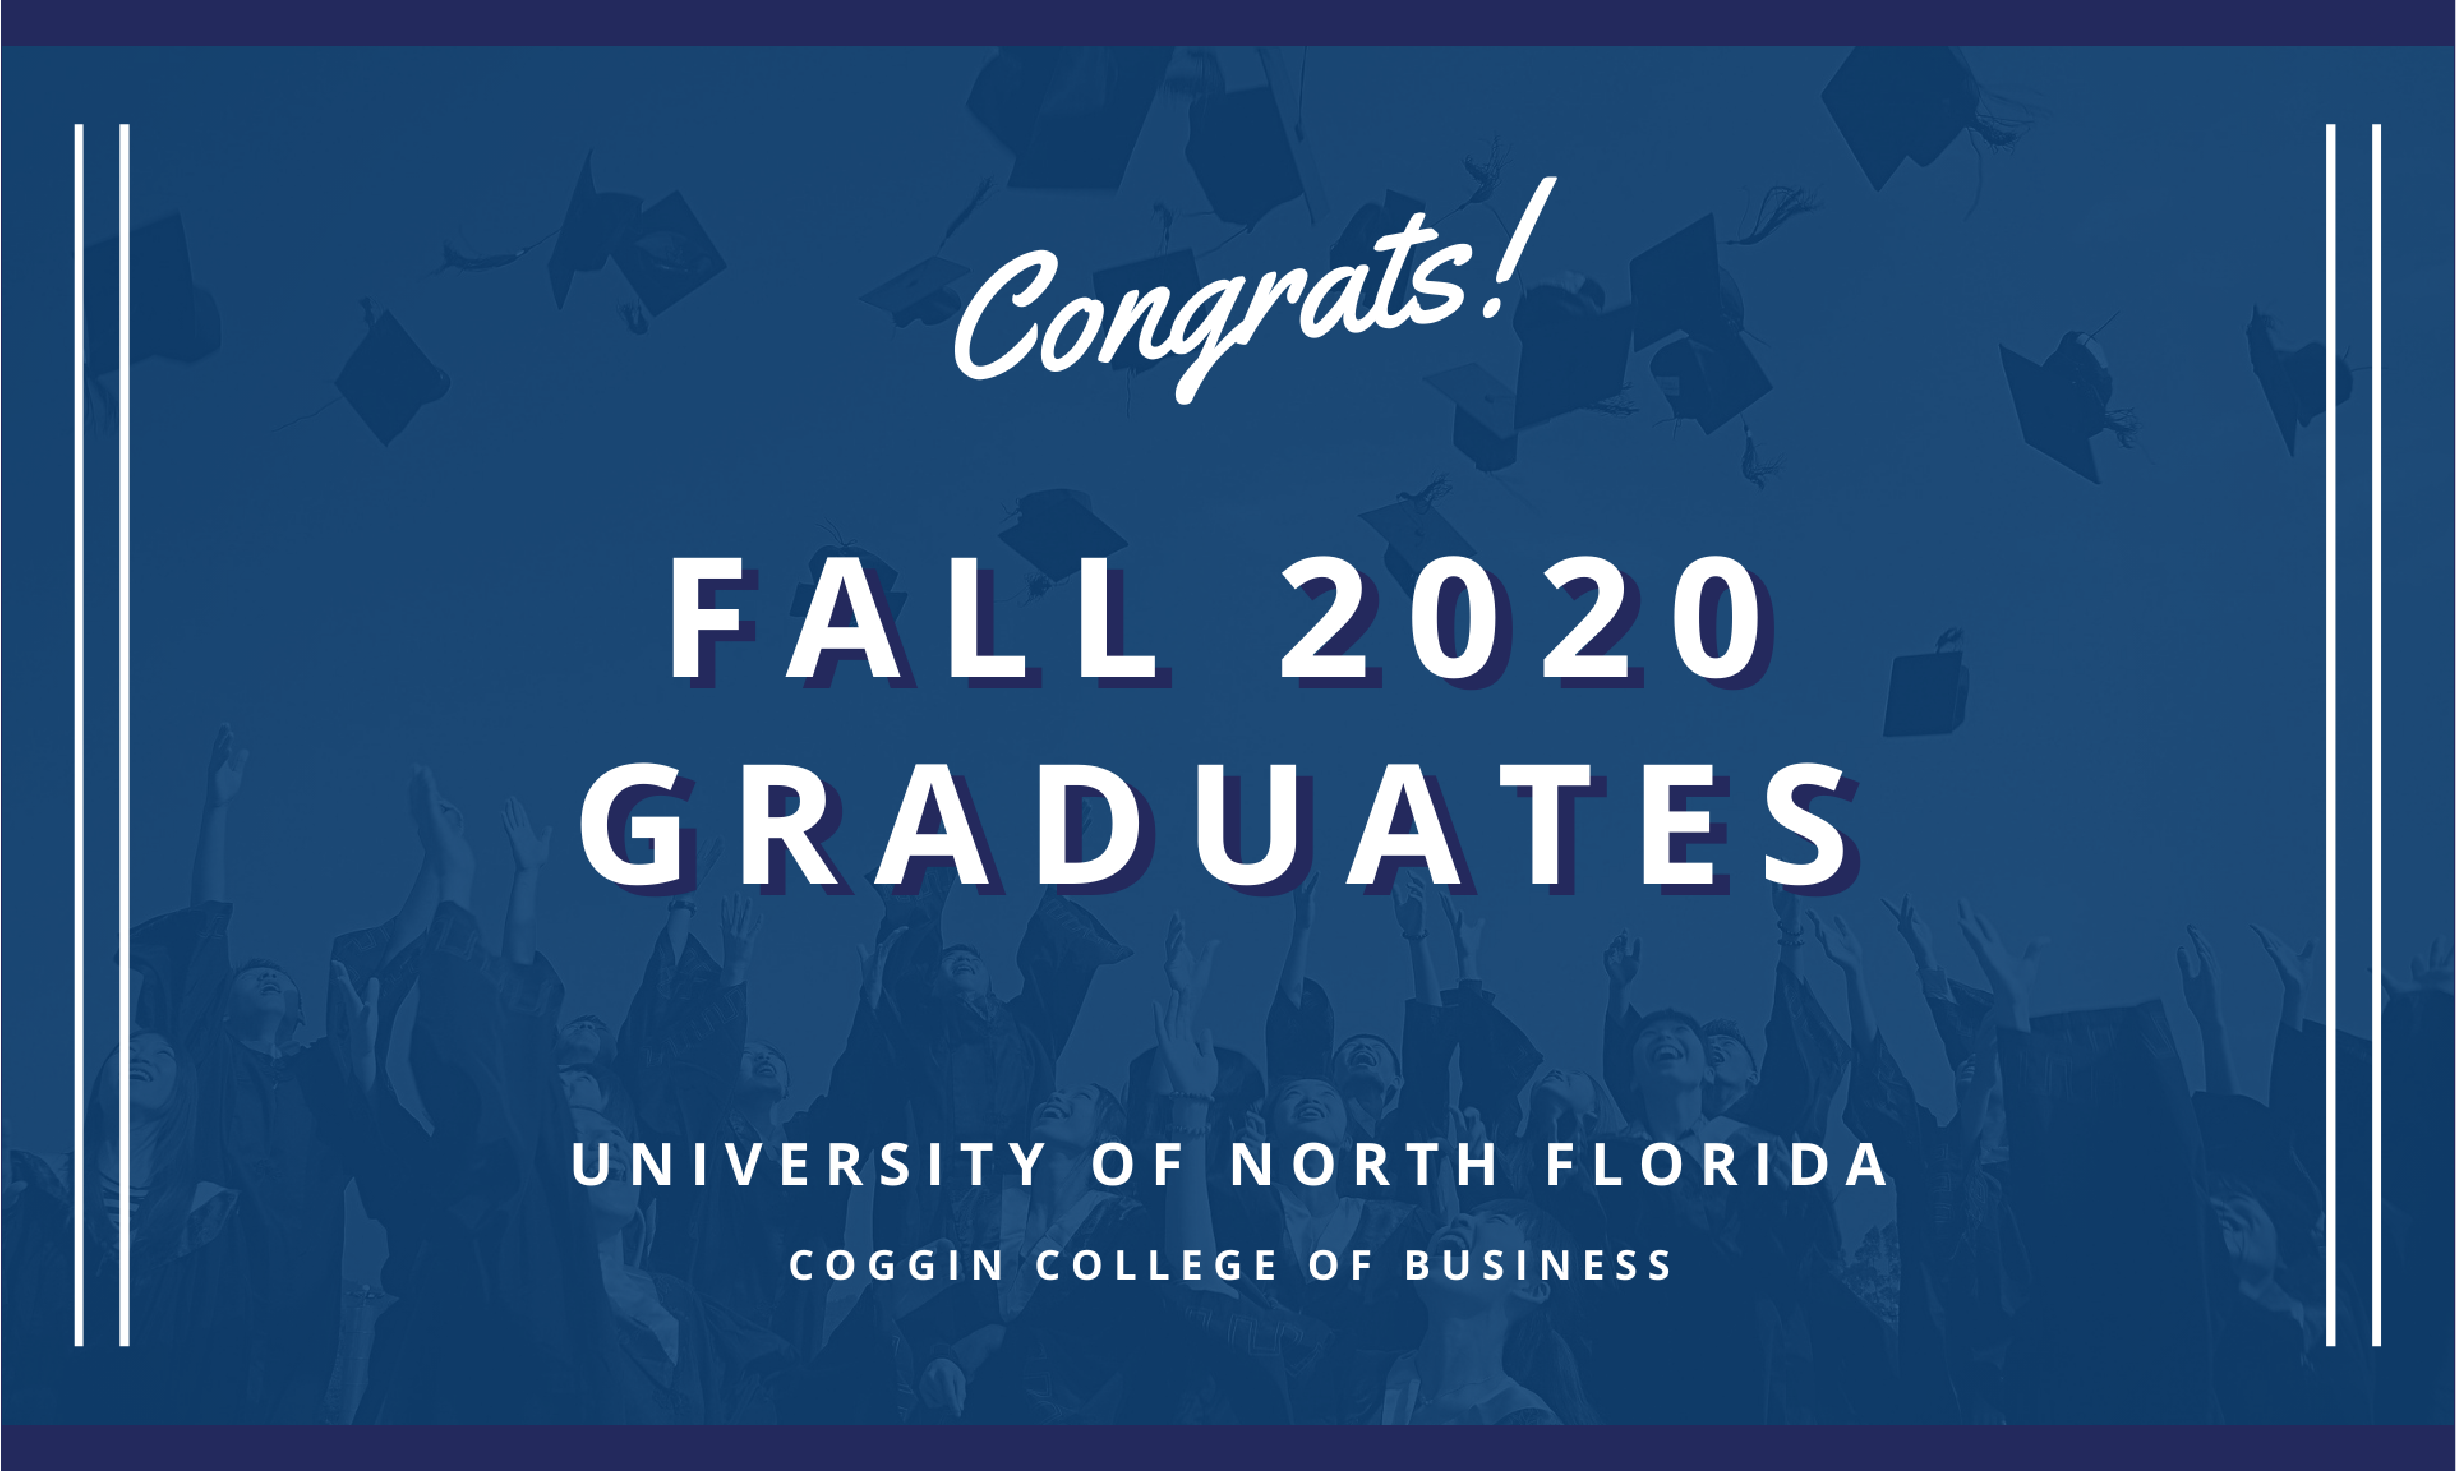 Congrats Fall 2020 Graduates. University of North Florida, Coggin College of Business. Image behind text that shows grads throwing caps into the air.